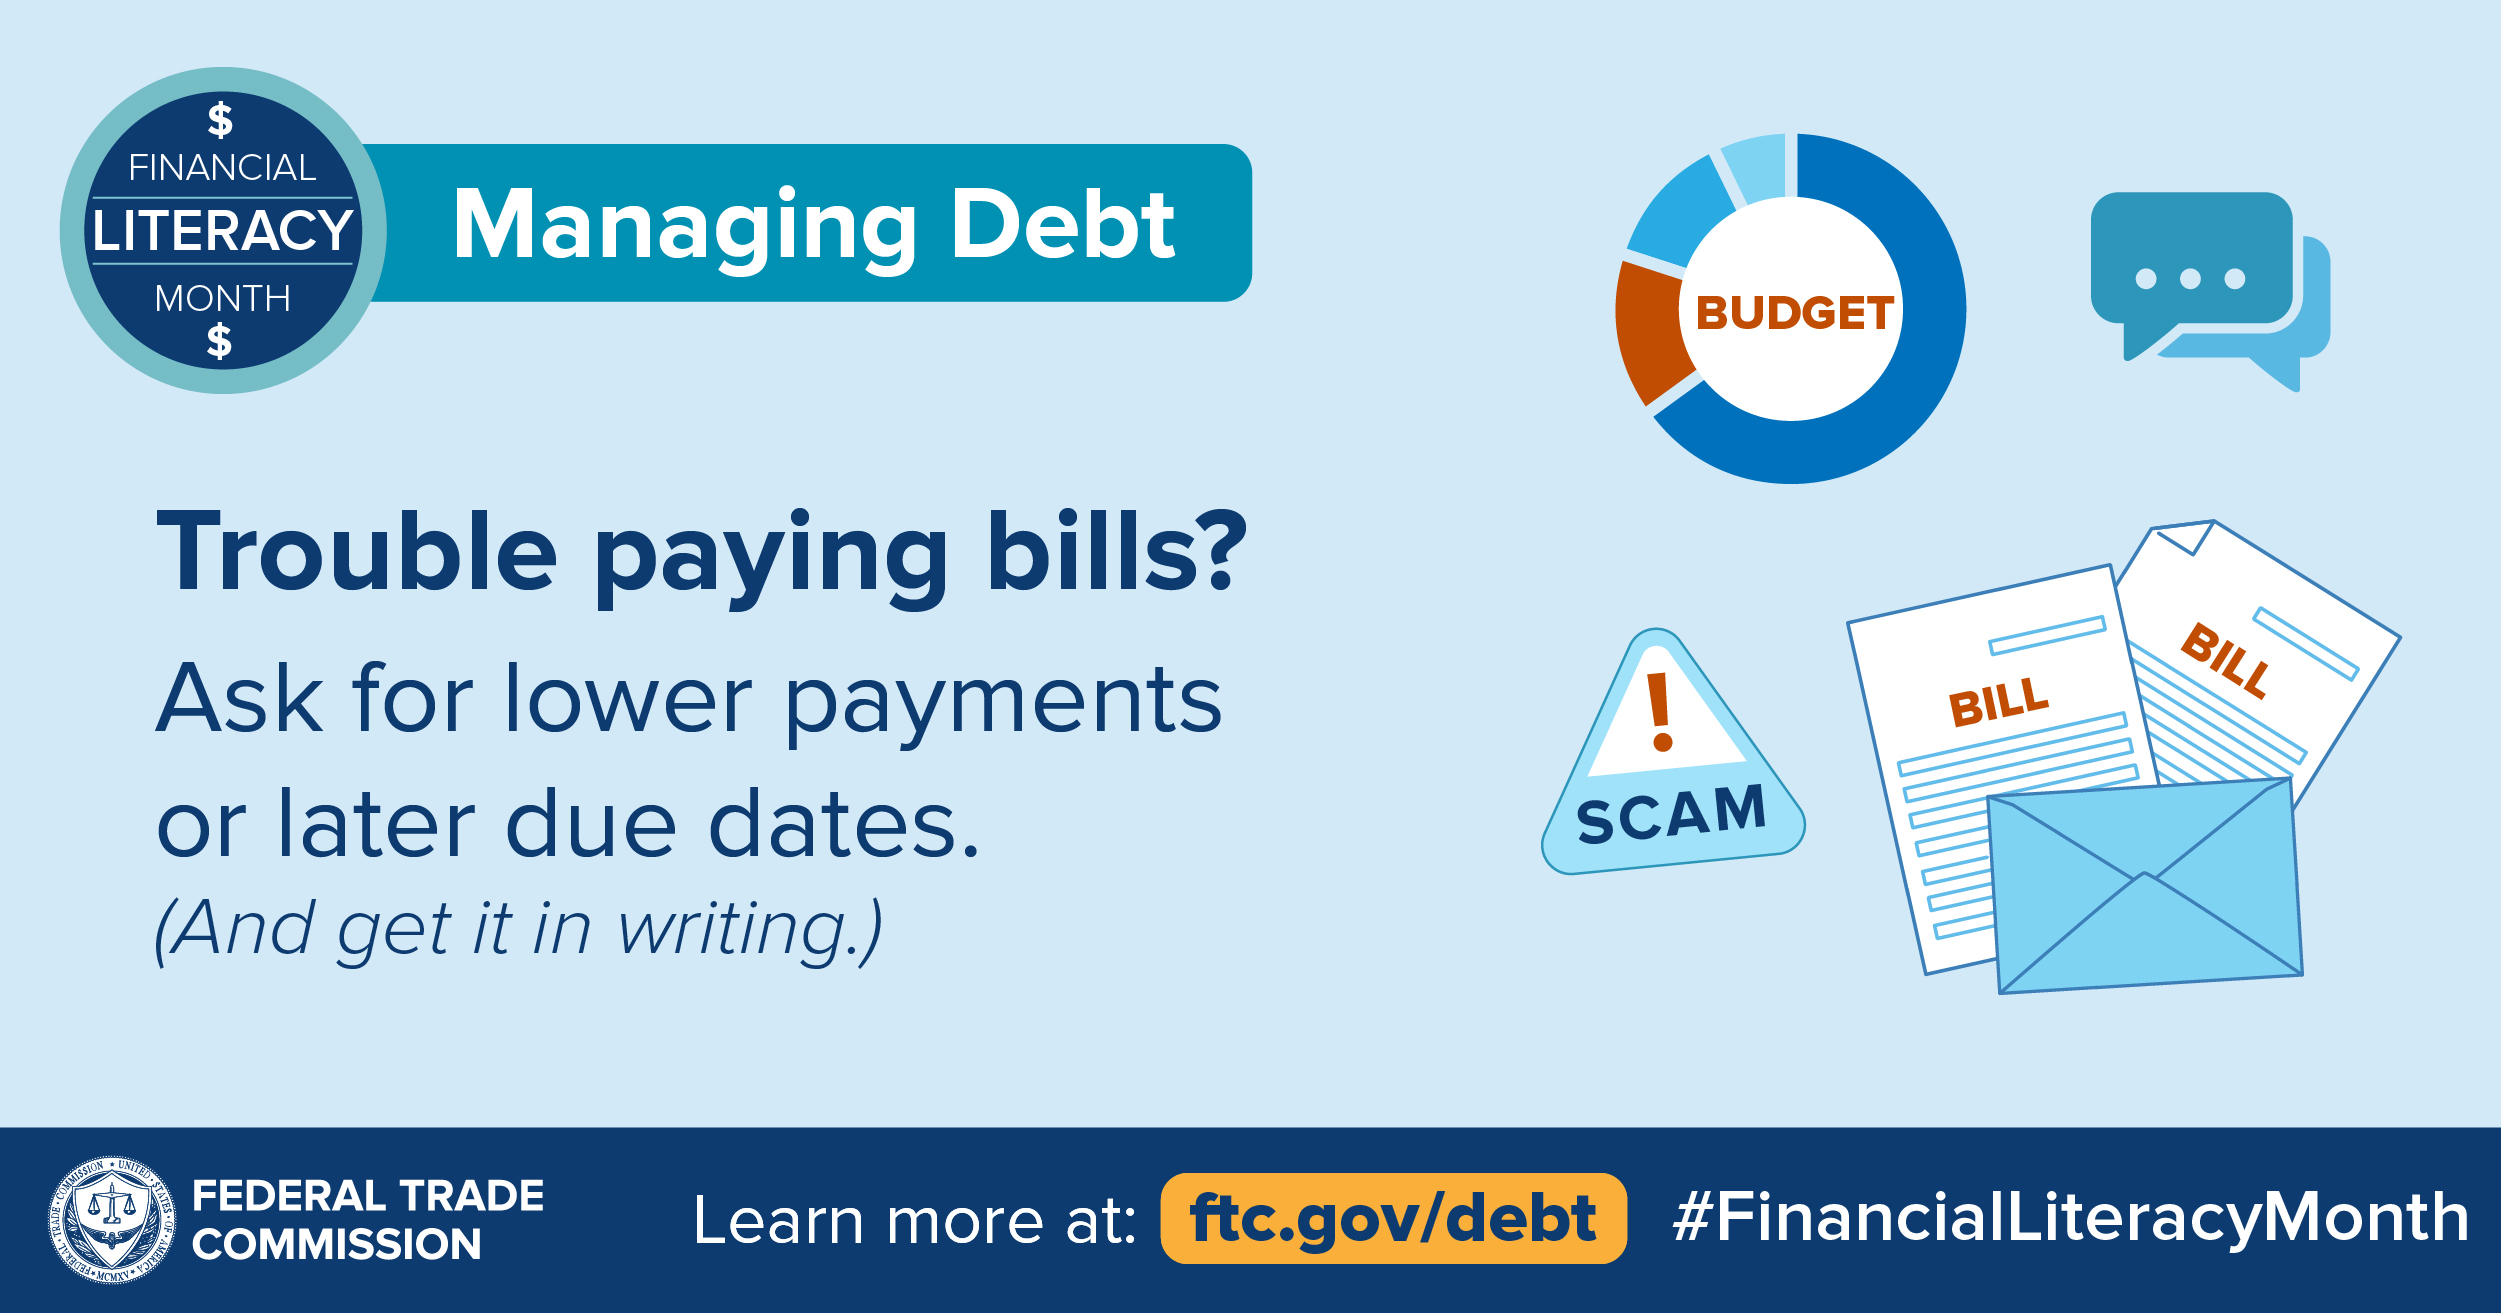 Trouble paying bills? Ask for lower payments or later due dates. (And get it in writing.) Learn more at ftc.gov/debt #FinancialLiteracyMonth